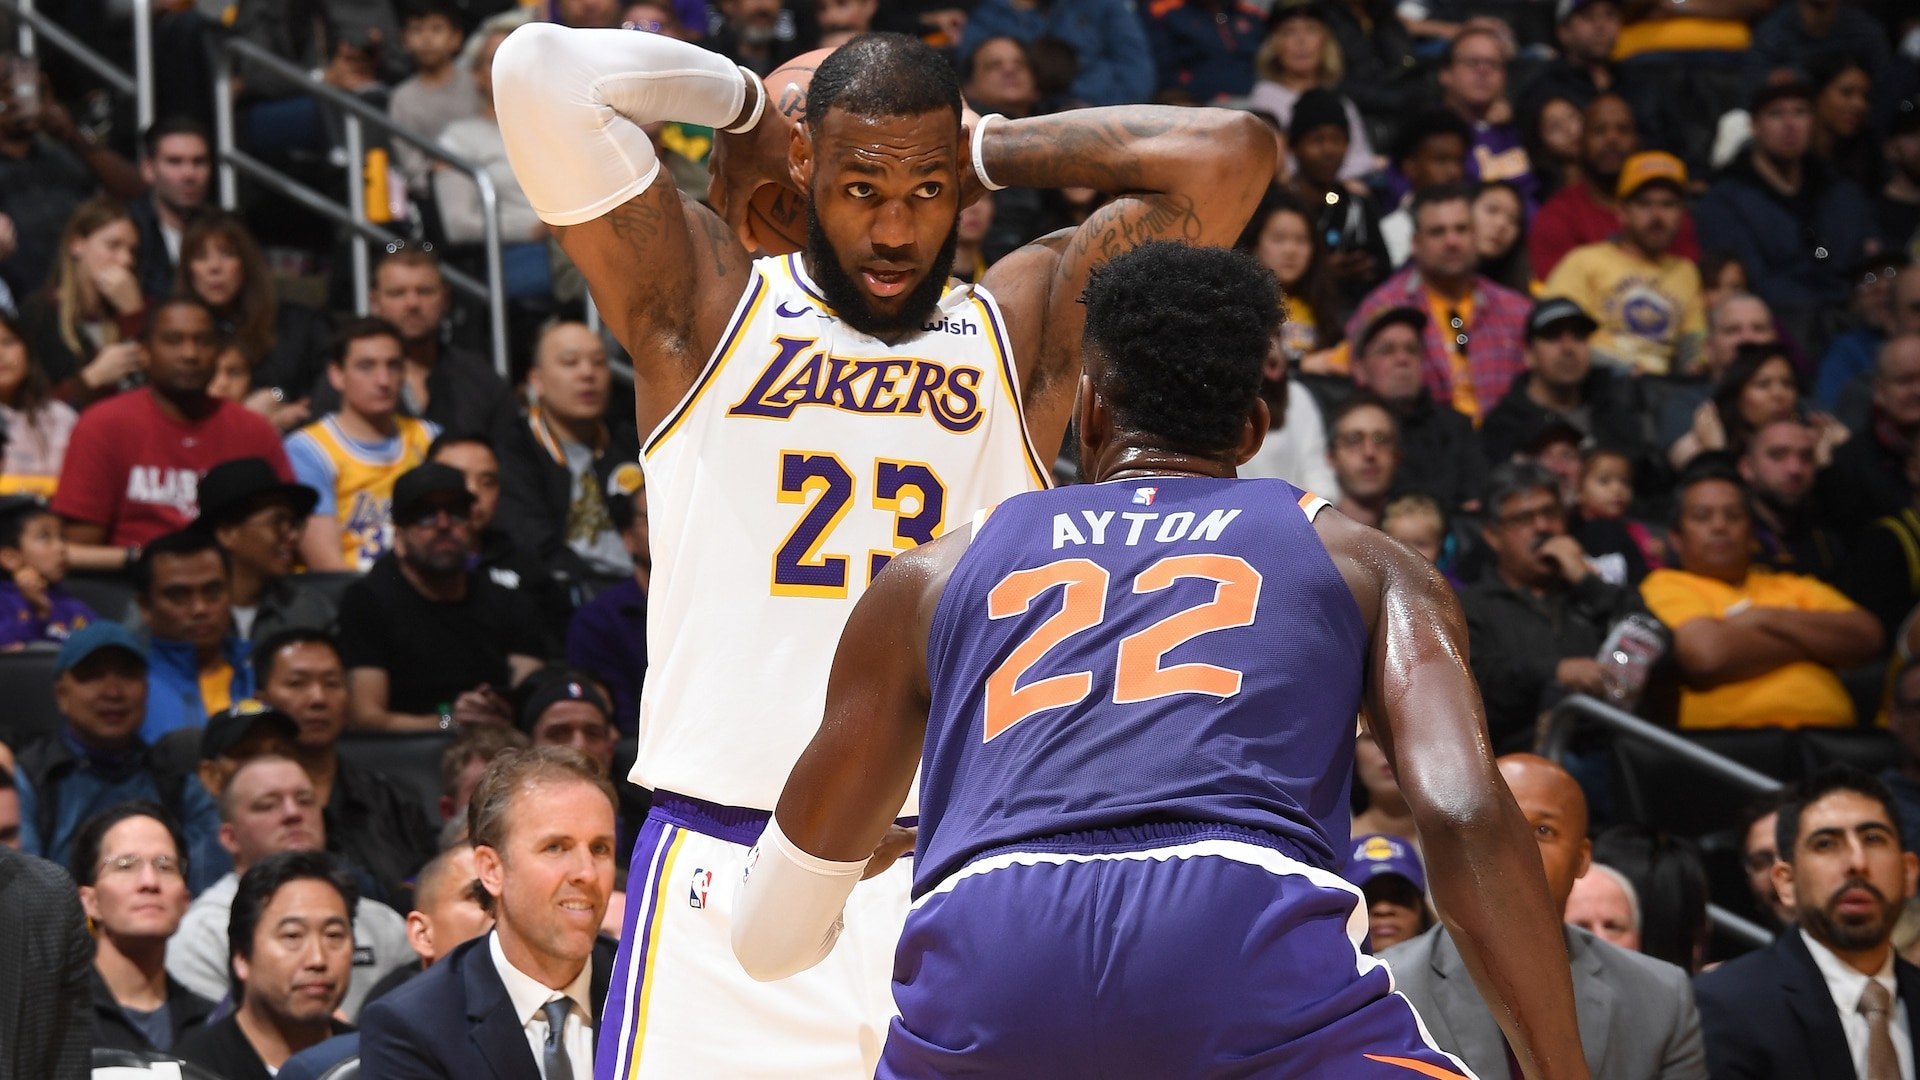 From willing passer to league leader, LeBron James is ready to dish